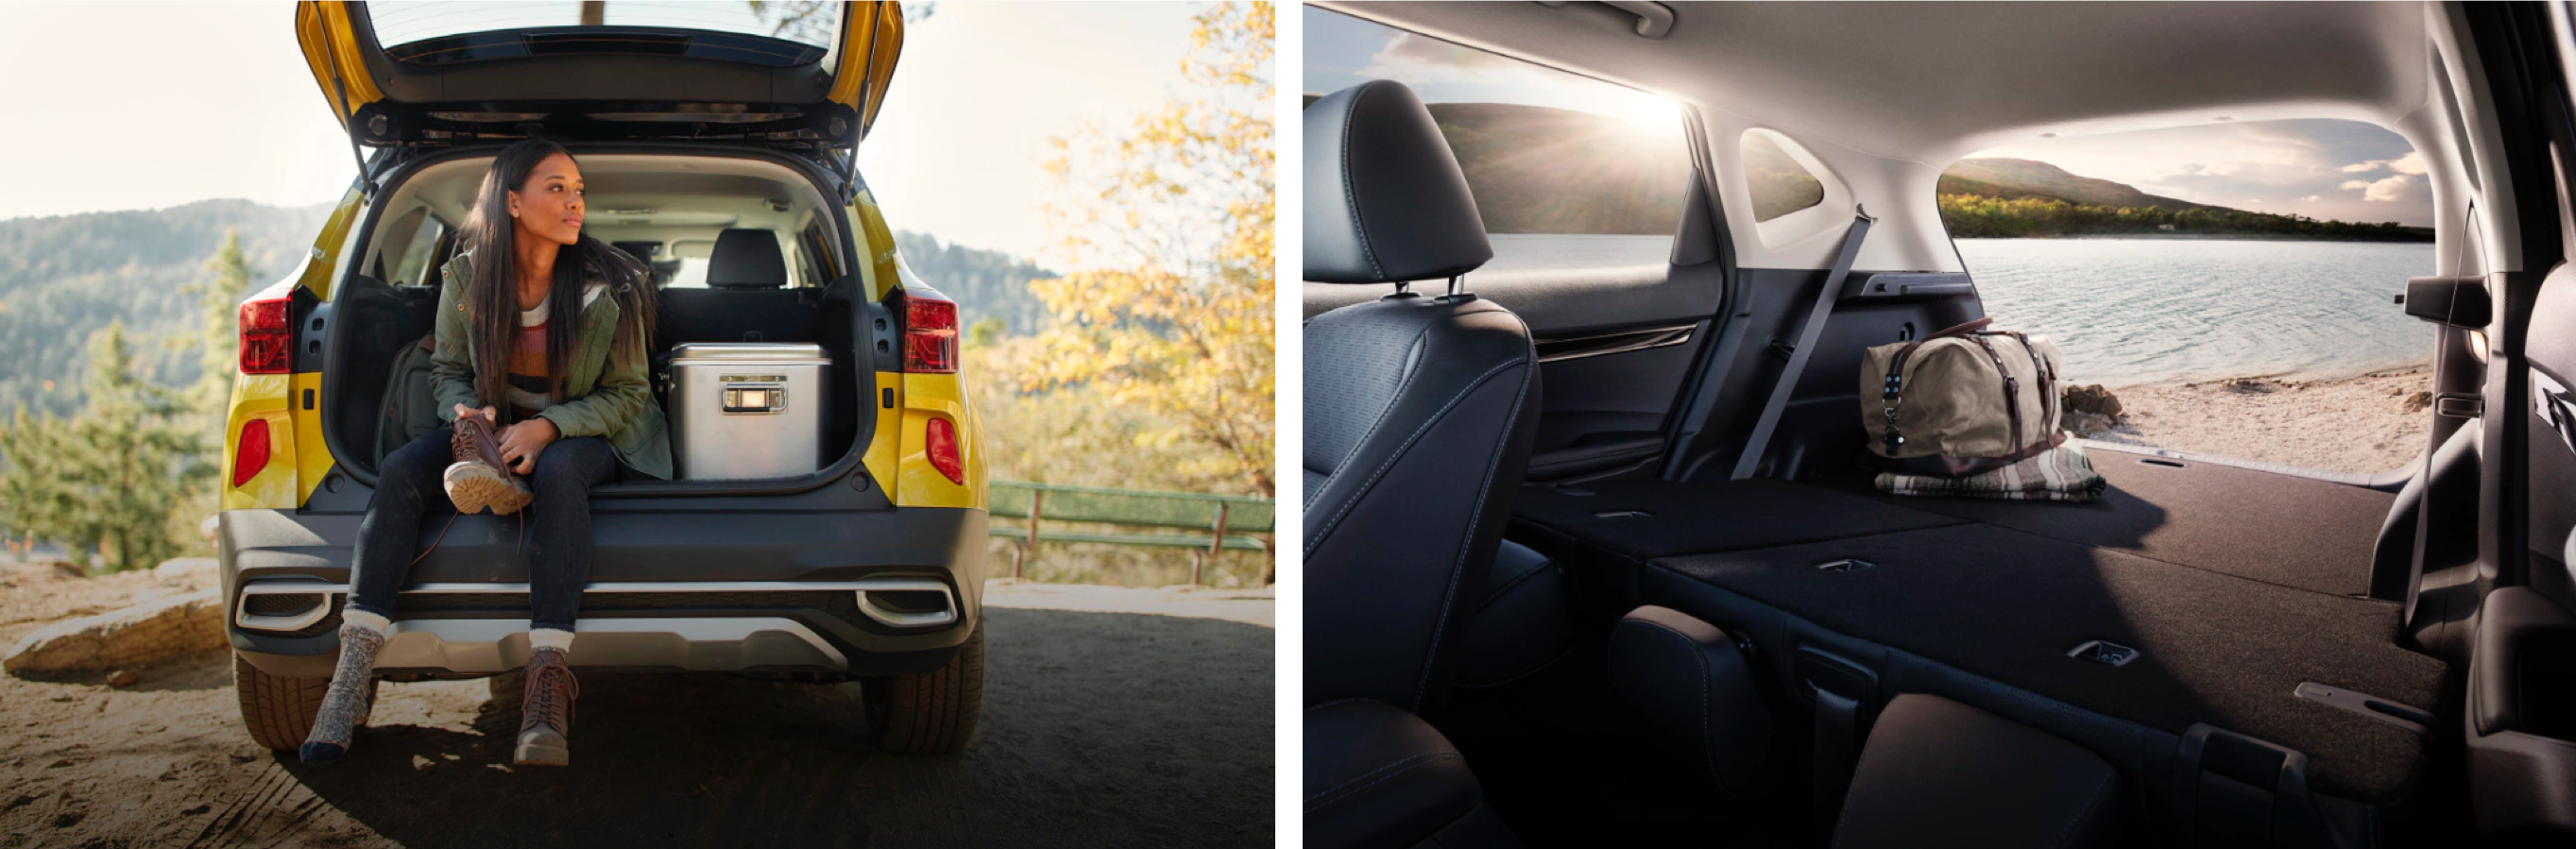 Cargo Space And Seating In The 2021 Kia Seltos